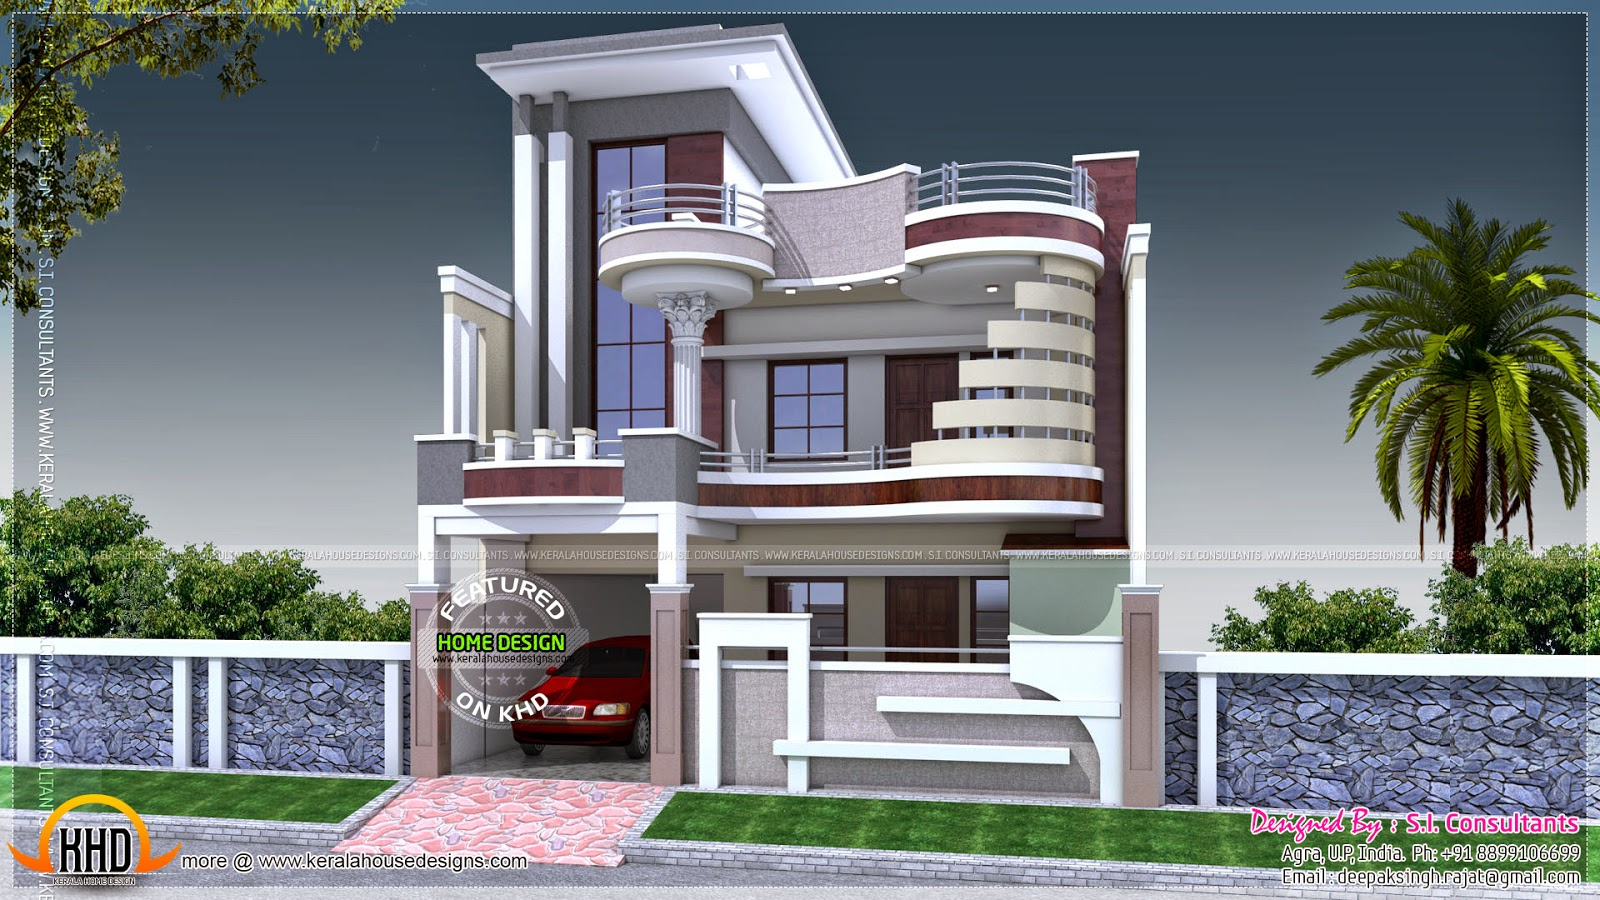 Best House Designs July 2014 Kerala Home Design And Floor Plans